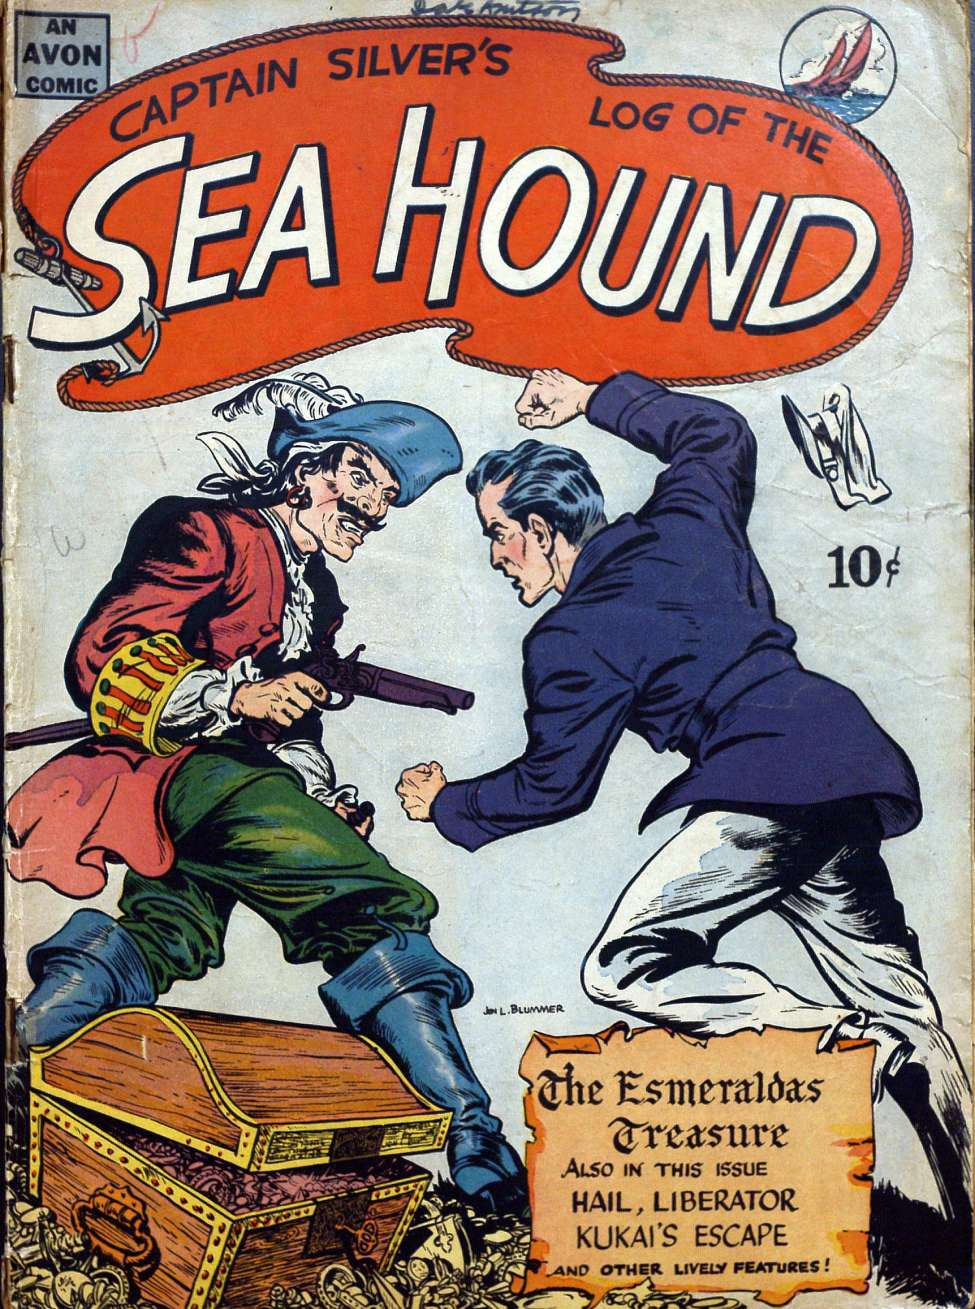 Comic Book Cover For Captain Silver's Log of the Sea Hound [nn] - Version 2